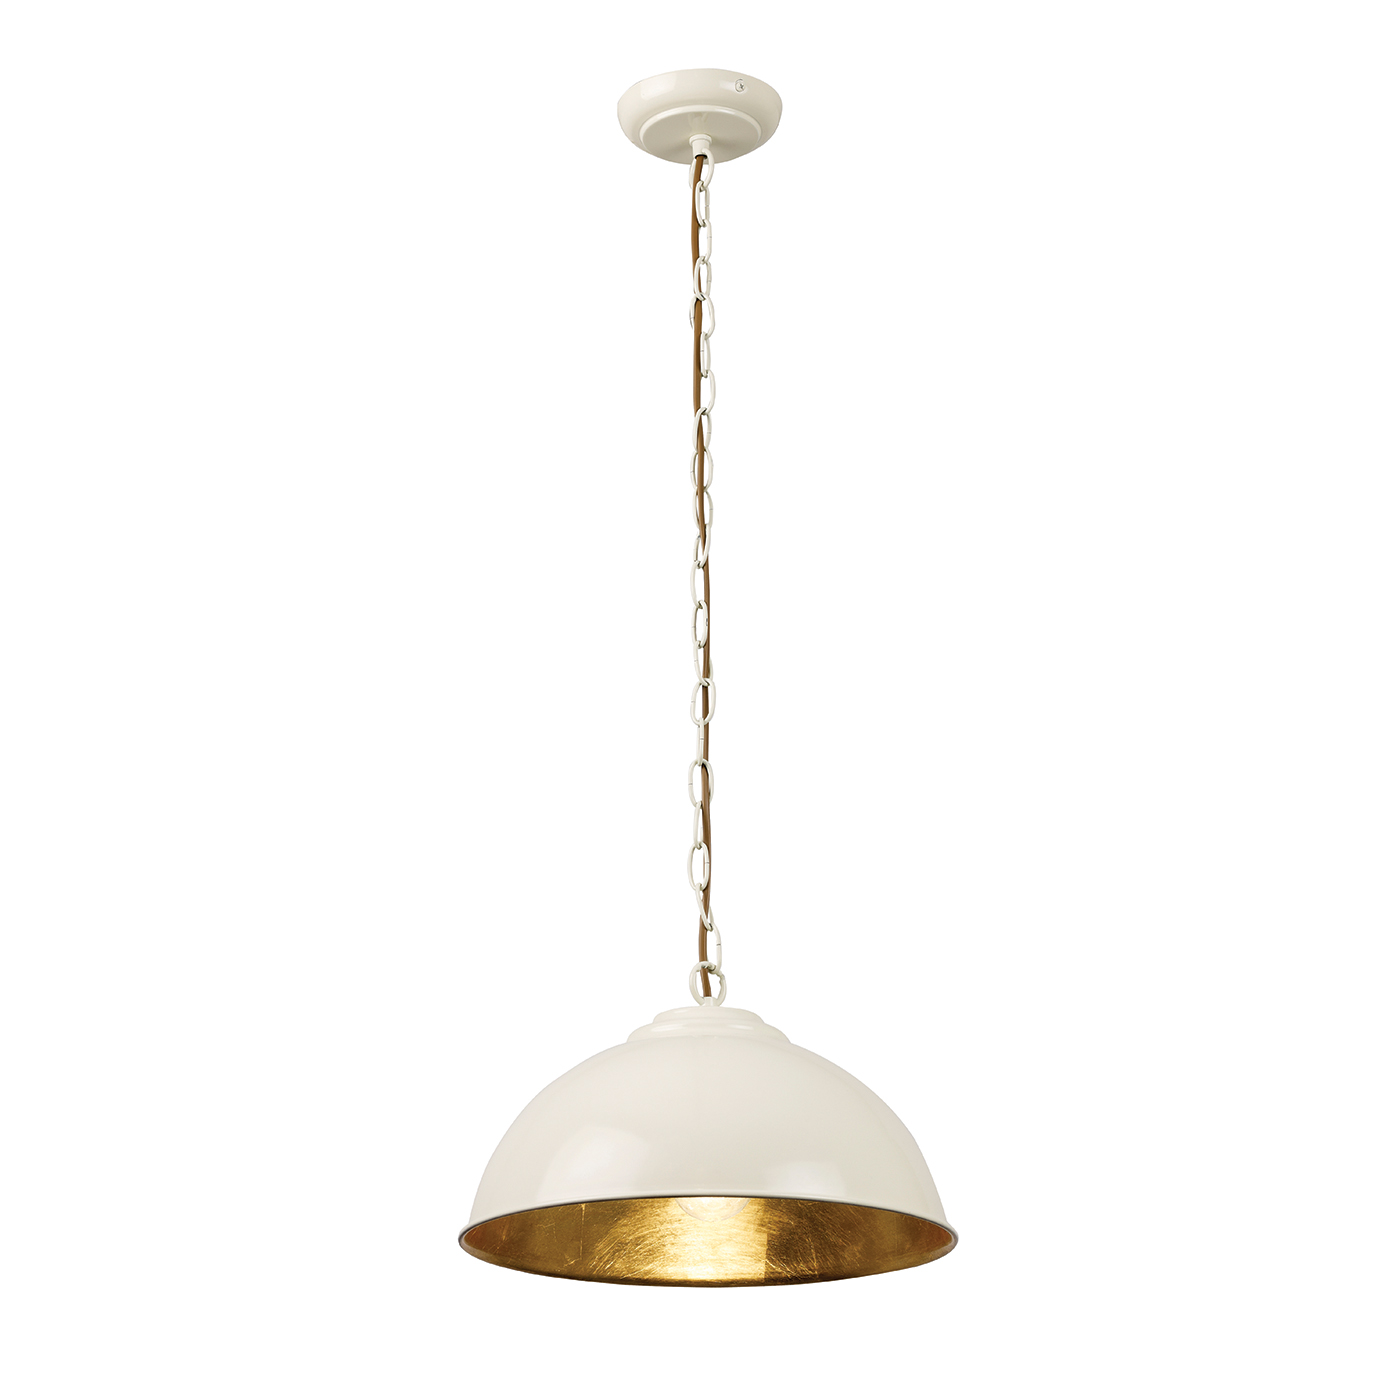 Endon Colman pendant 1x 60W Gloss cream paint & gold leaf Thumbnail 1